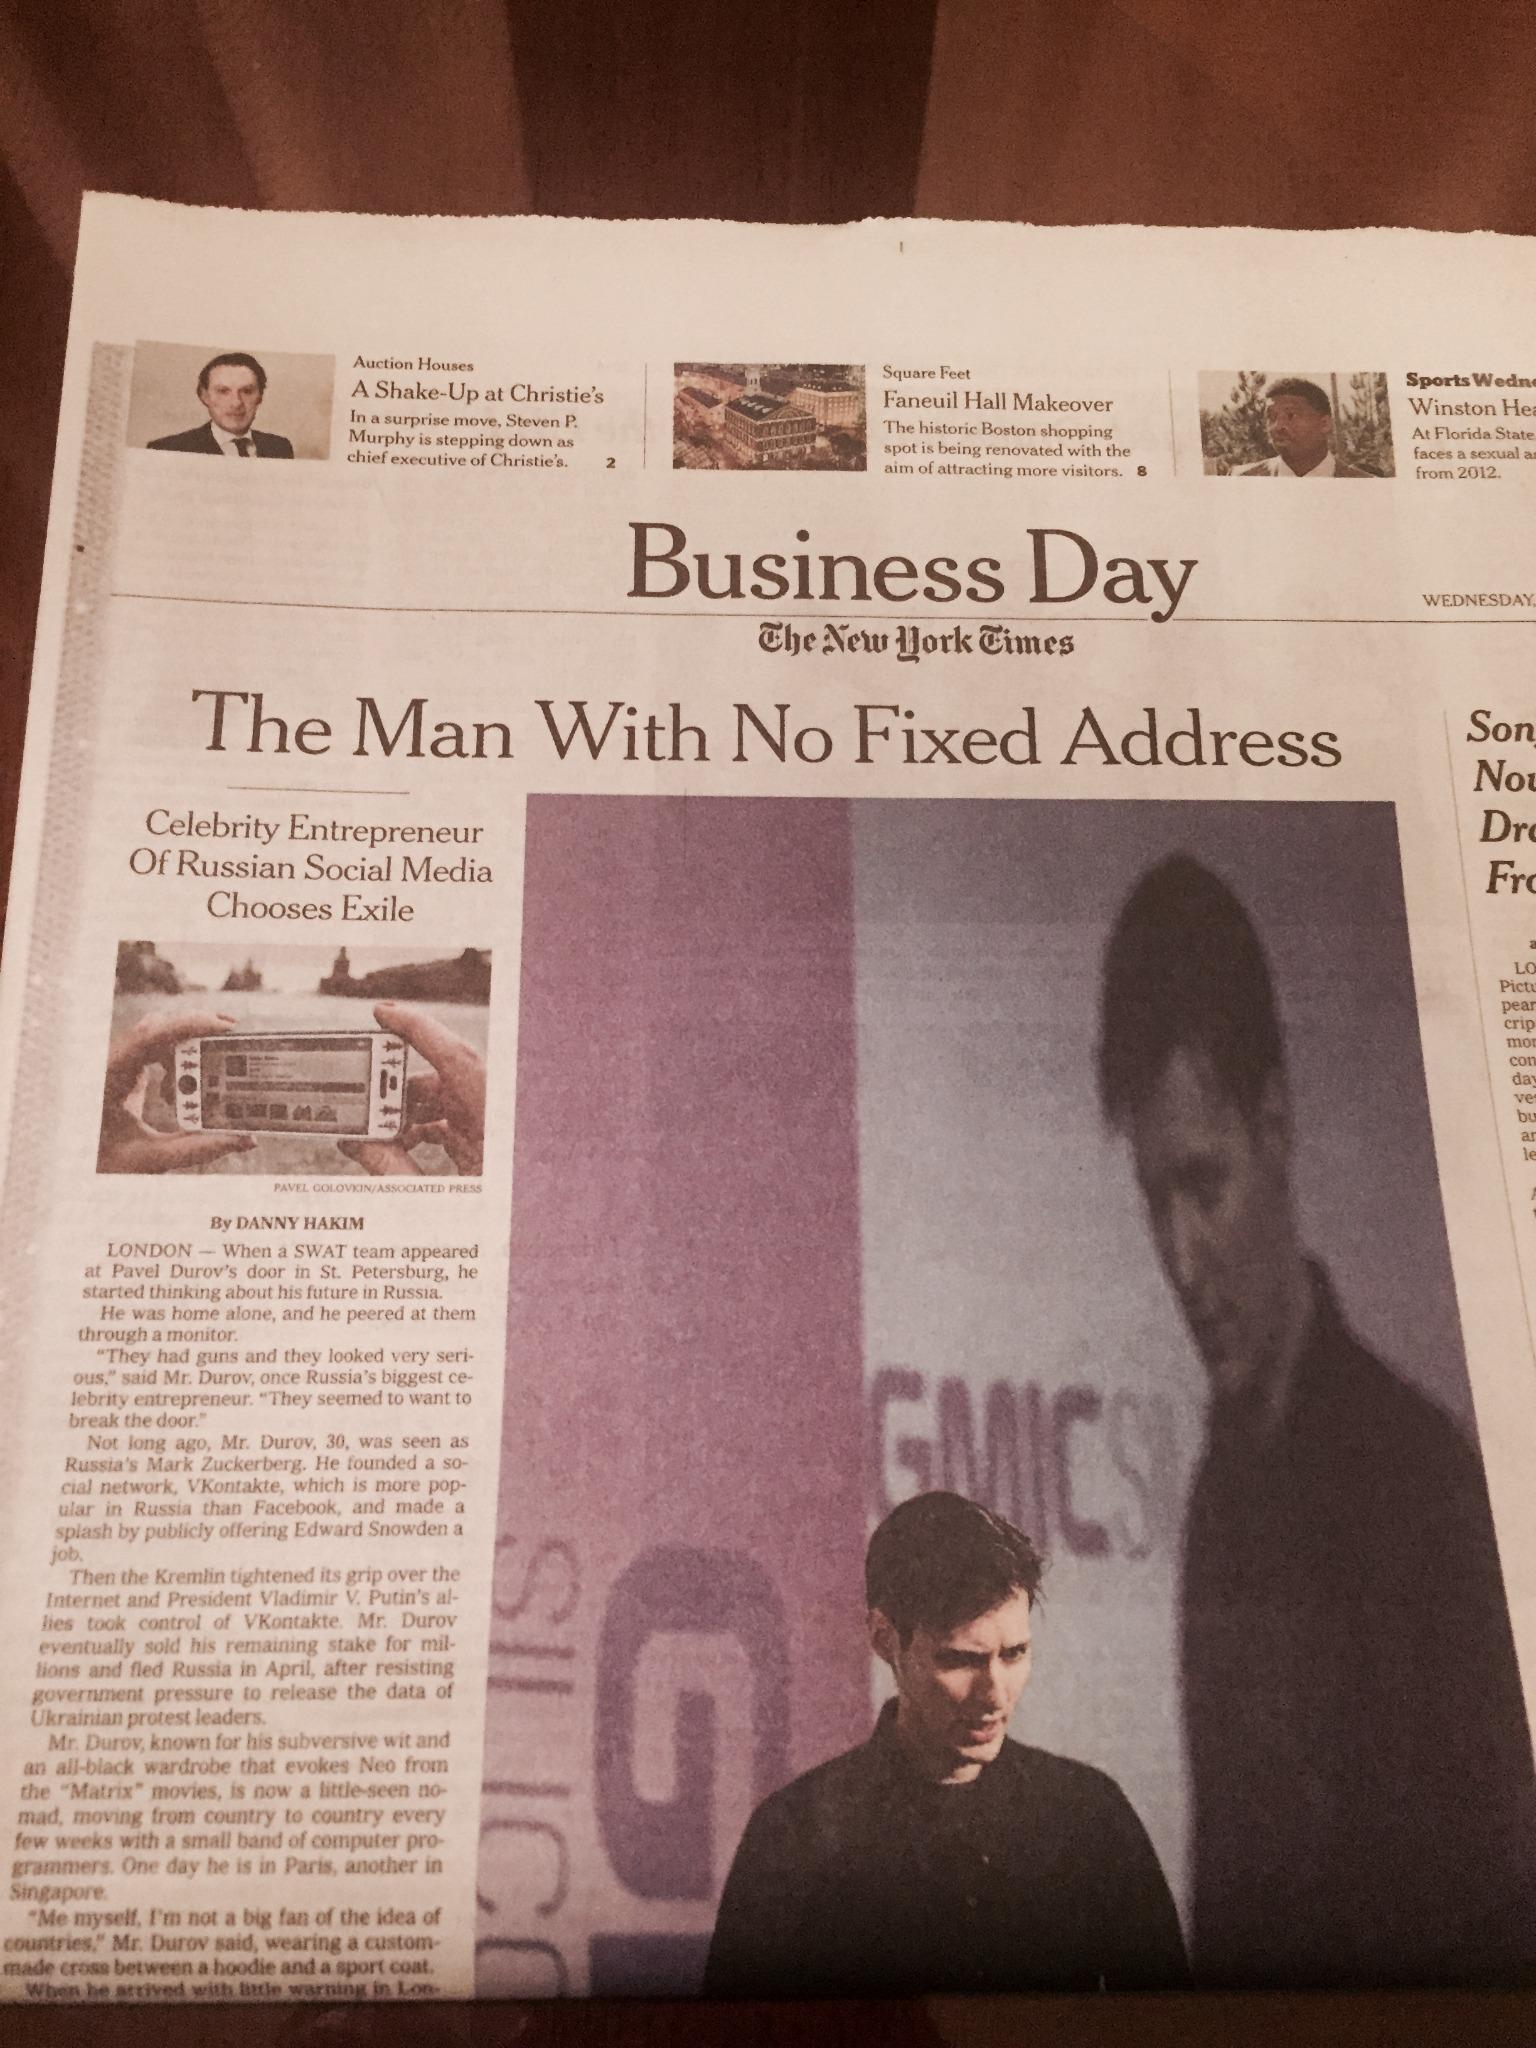 Pavel Durov chooses exile, reports NYTimes in 2014